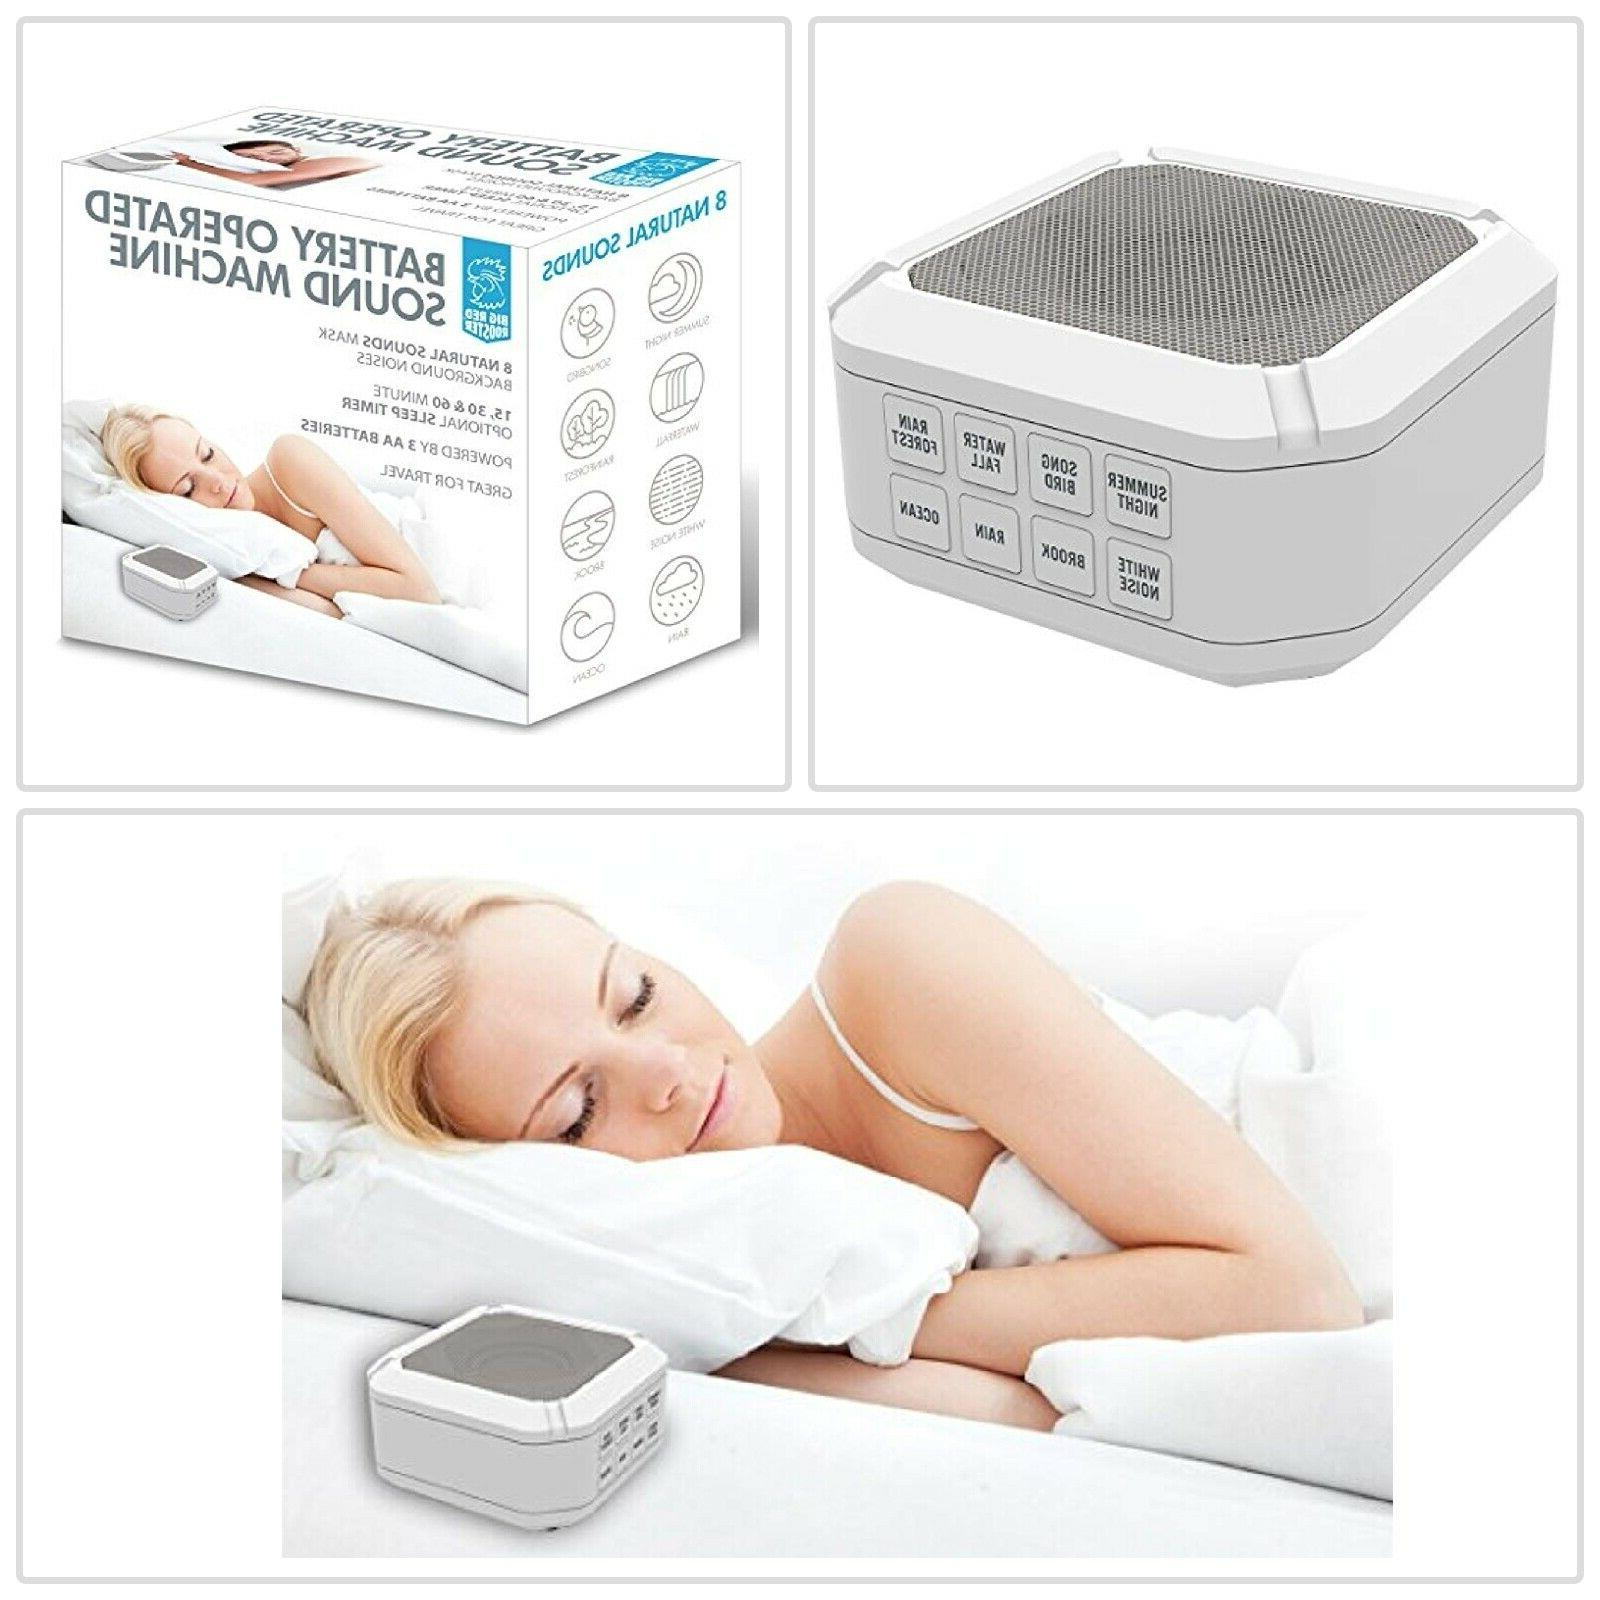 sound machine for sleeping aid and relaxation